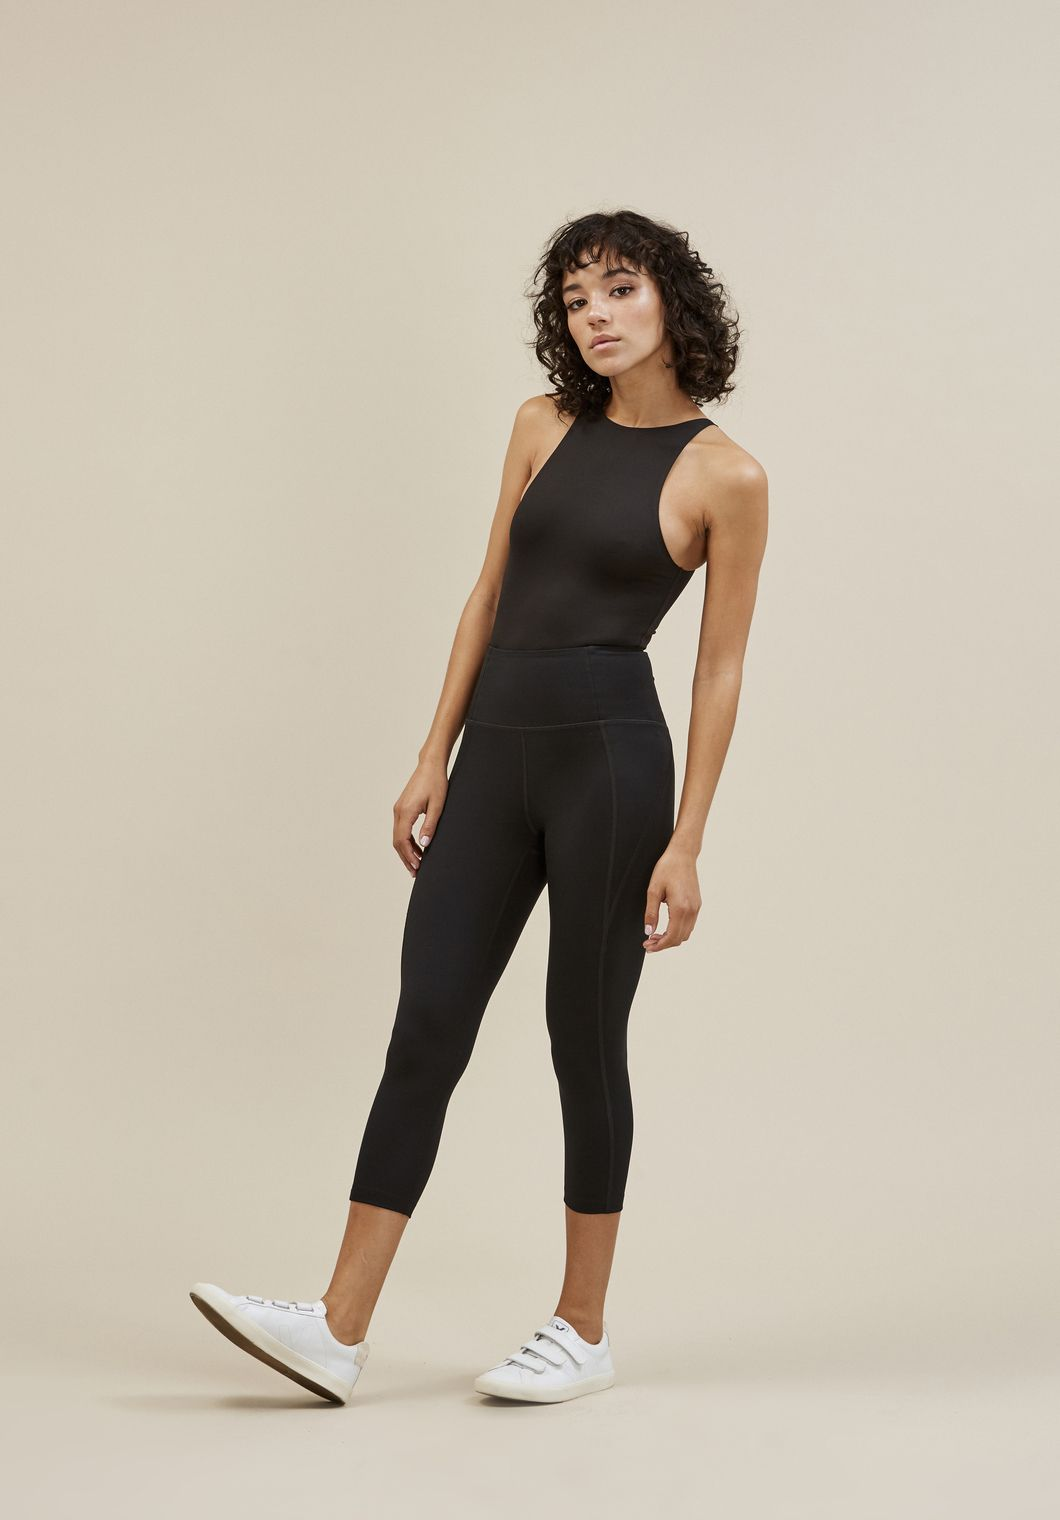 b626c9ba42 Compression leggings made from recycled water bottles, so you can do good  without even breaking a sweat.